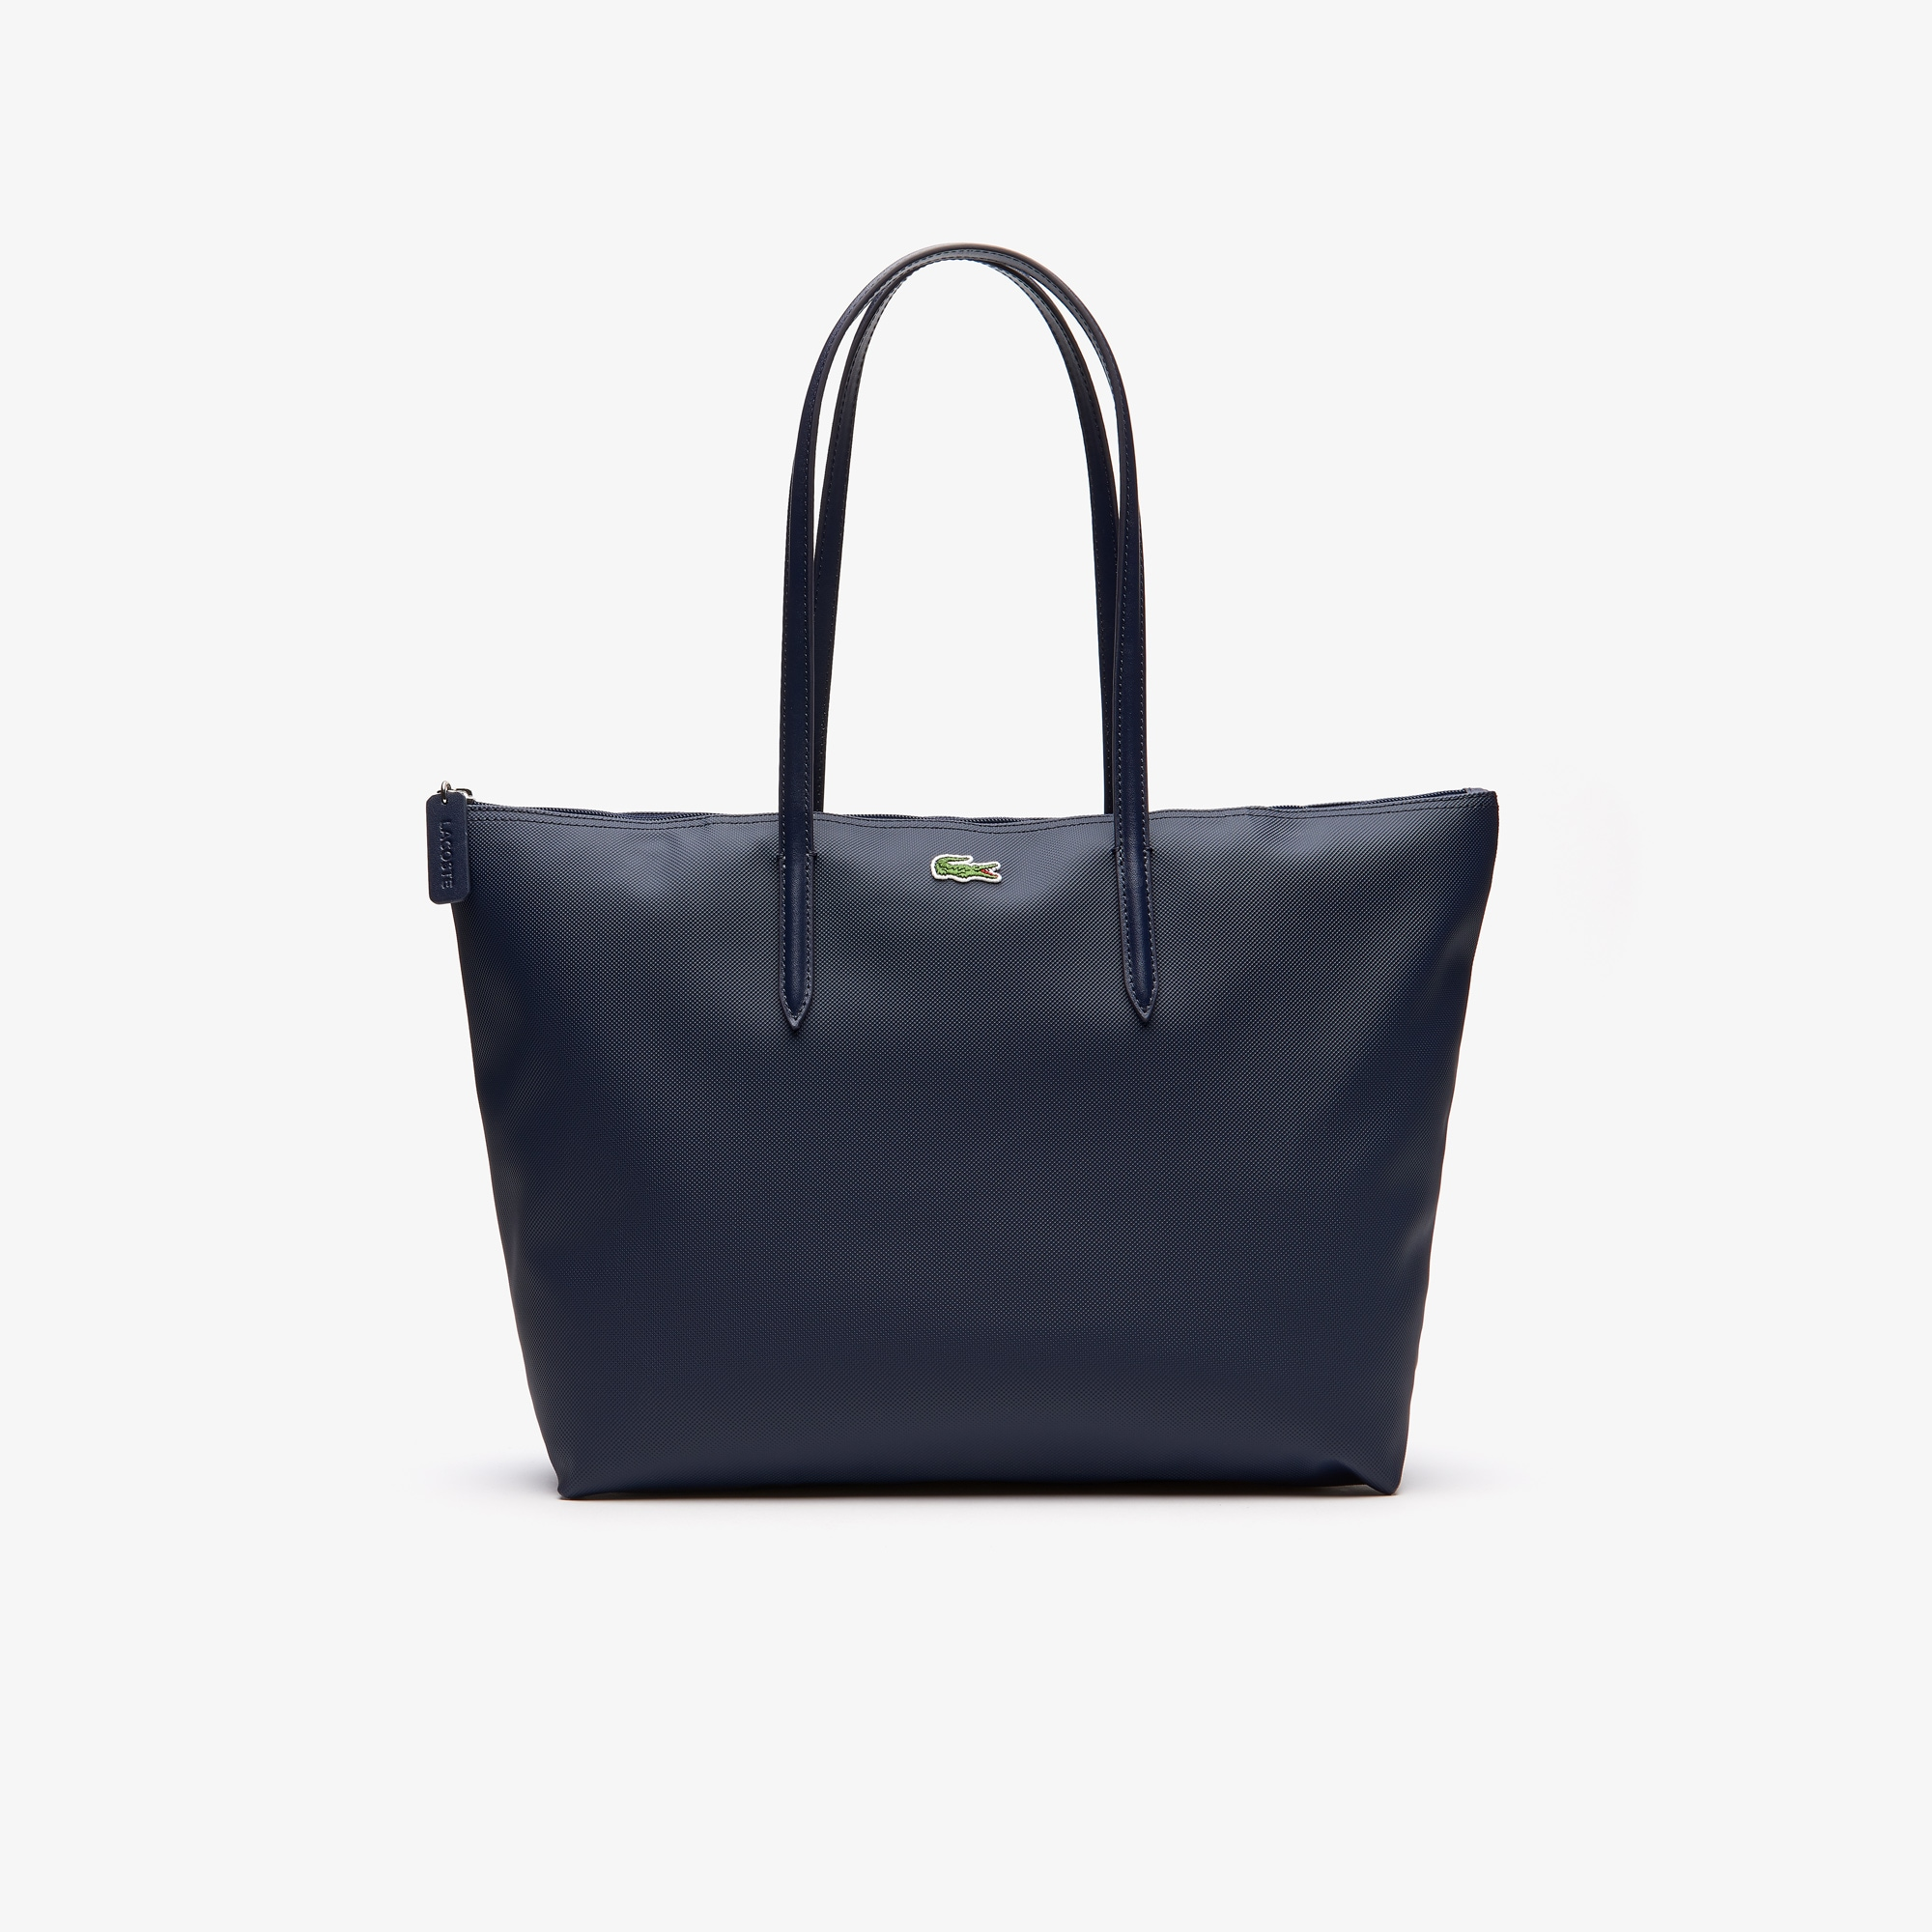 Sac A Main Lacoste Femme Solde